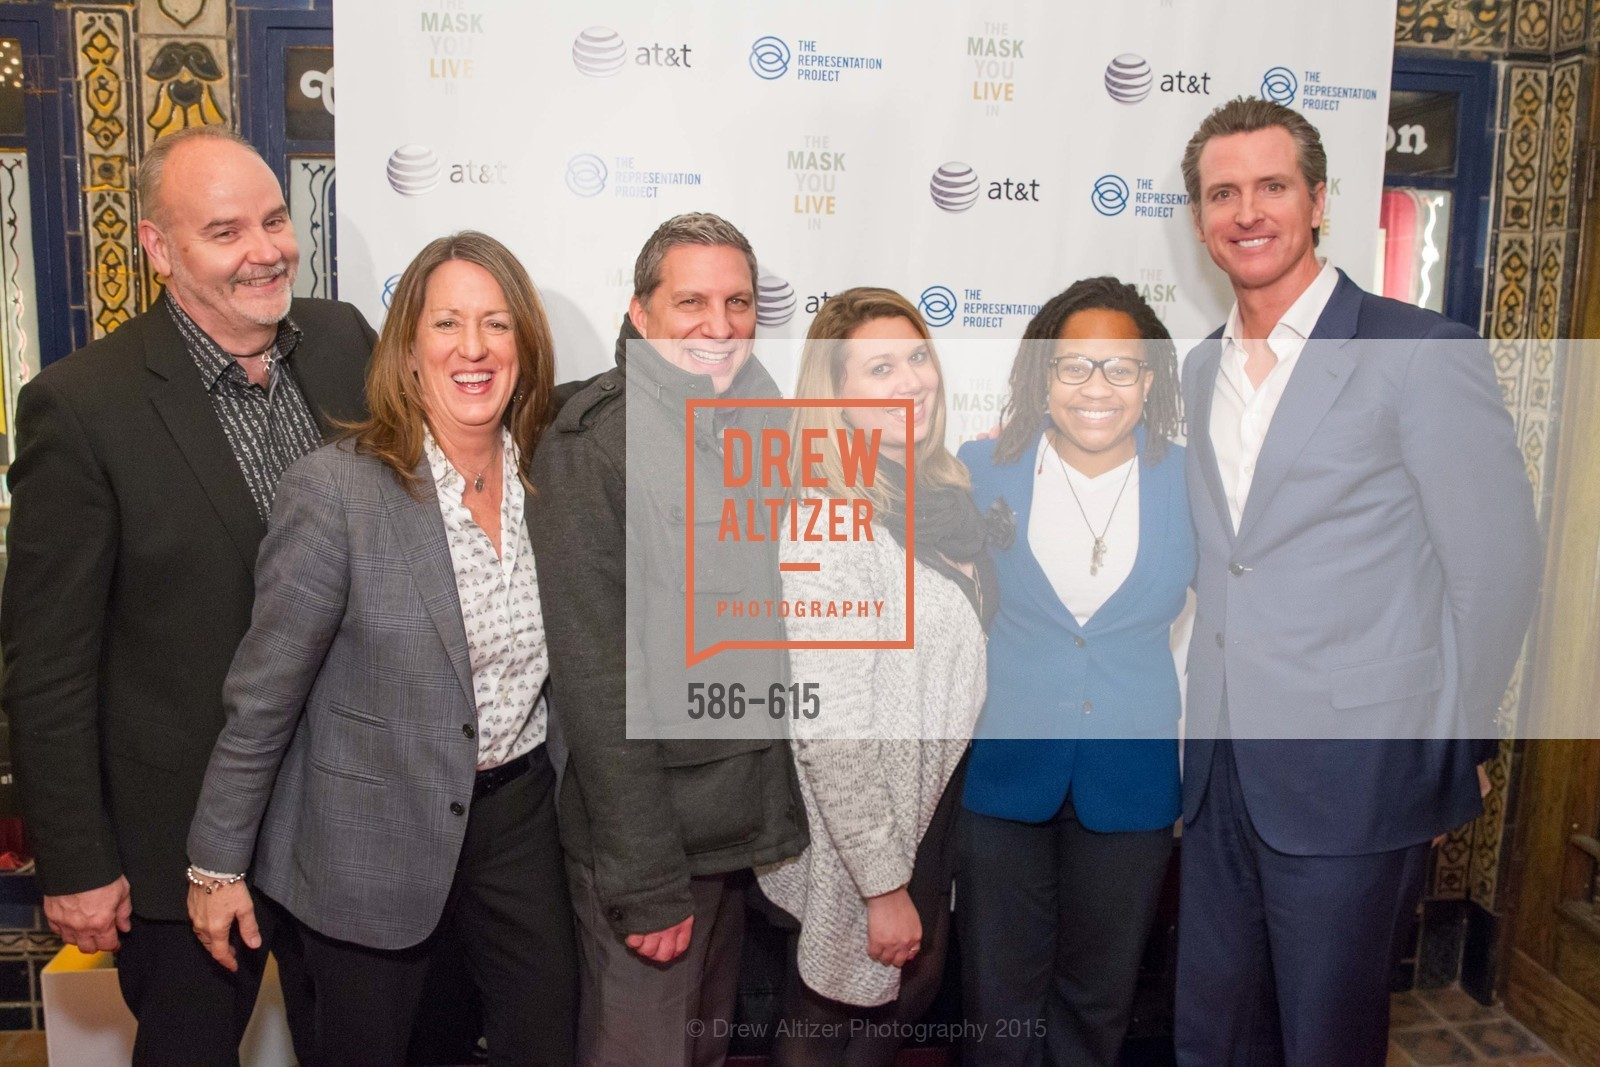 Dave Allen, Kate Kendall, Kim Elsie, Daniel Saragusa, Ace Portis, Gavin Newsom, Jennifer Siebel Newsom's Castro Screening The Mask You Live In, Castro Theatre. 429 Castro Street, December 2nd, 2015,Drew Altizer, Drew Altizer Photography, full-service agency, private events, San Francisco photographer, photographer california